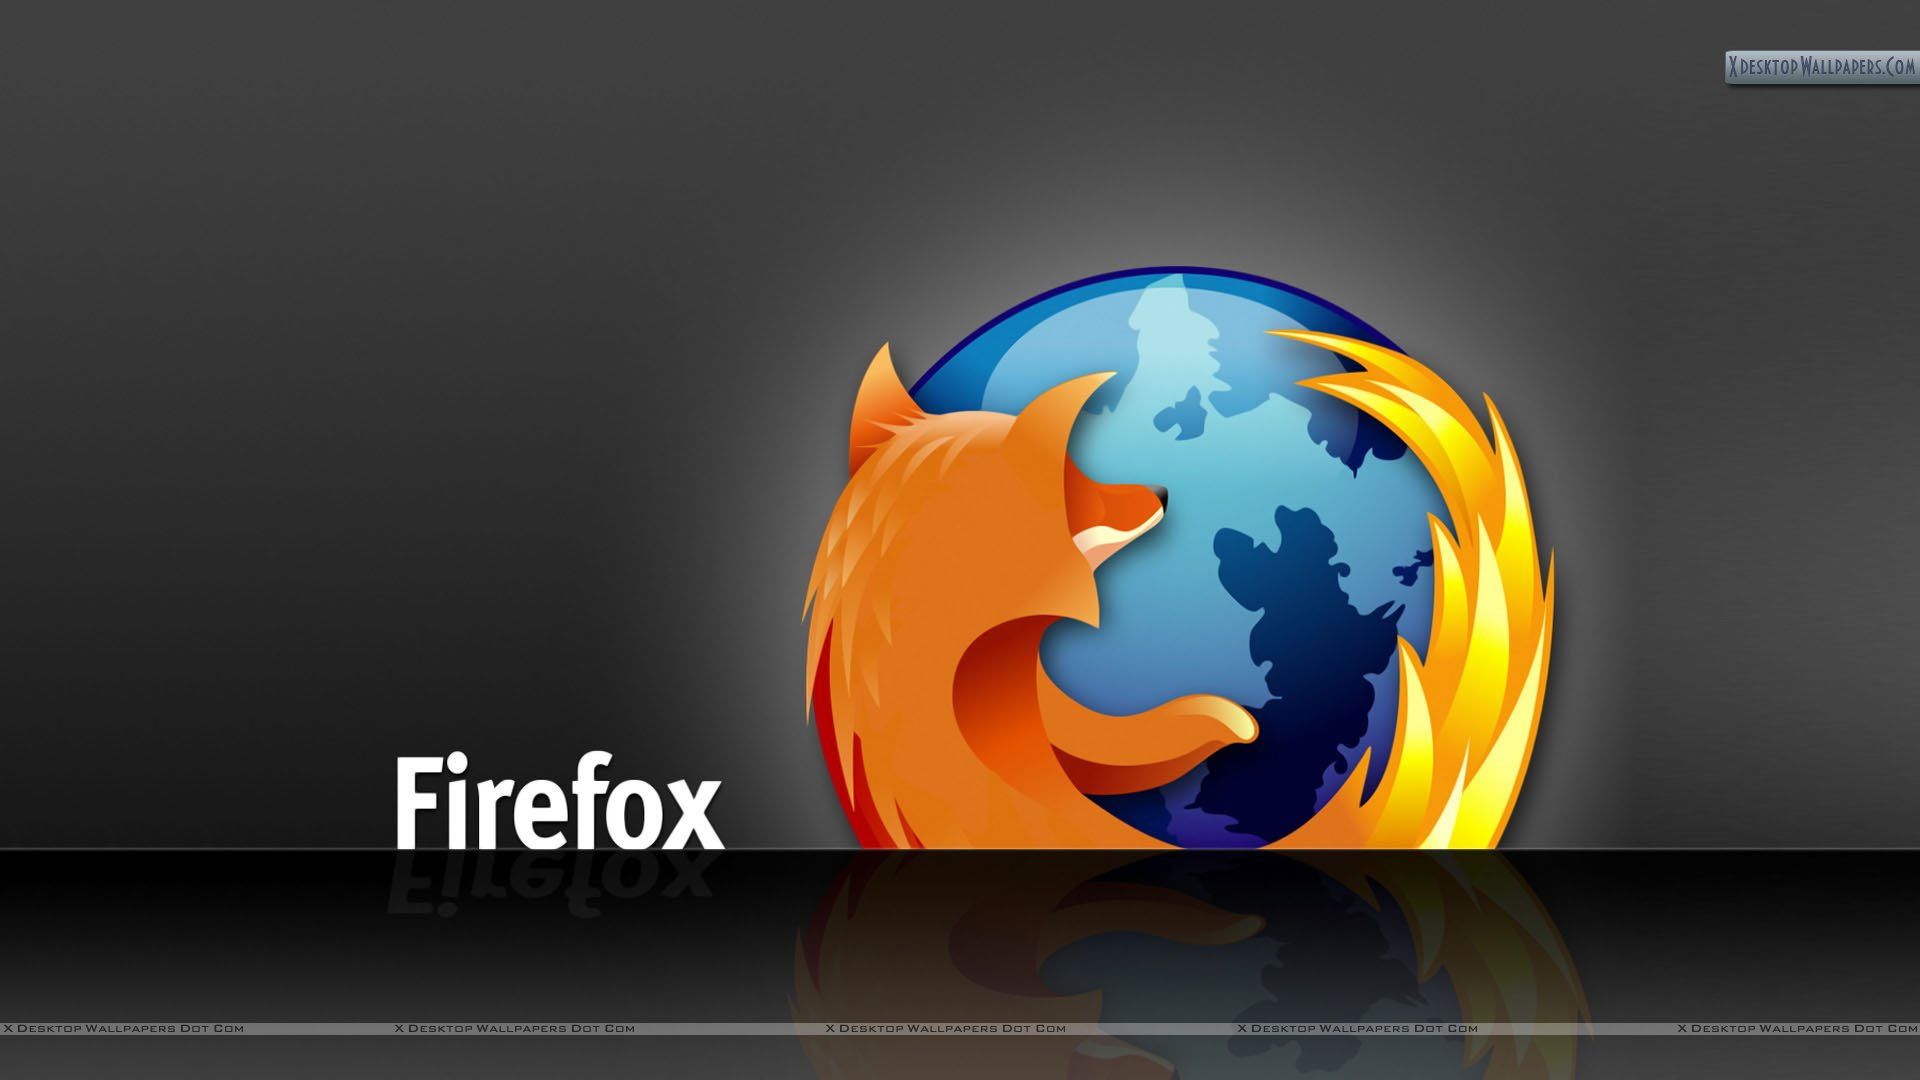 Firefox Awesome Desktop Wallpaper On Black Background Wallpaper 1920x1080